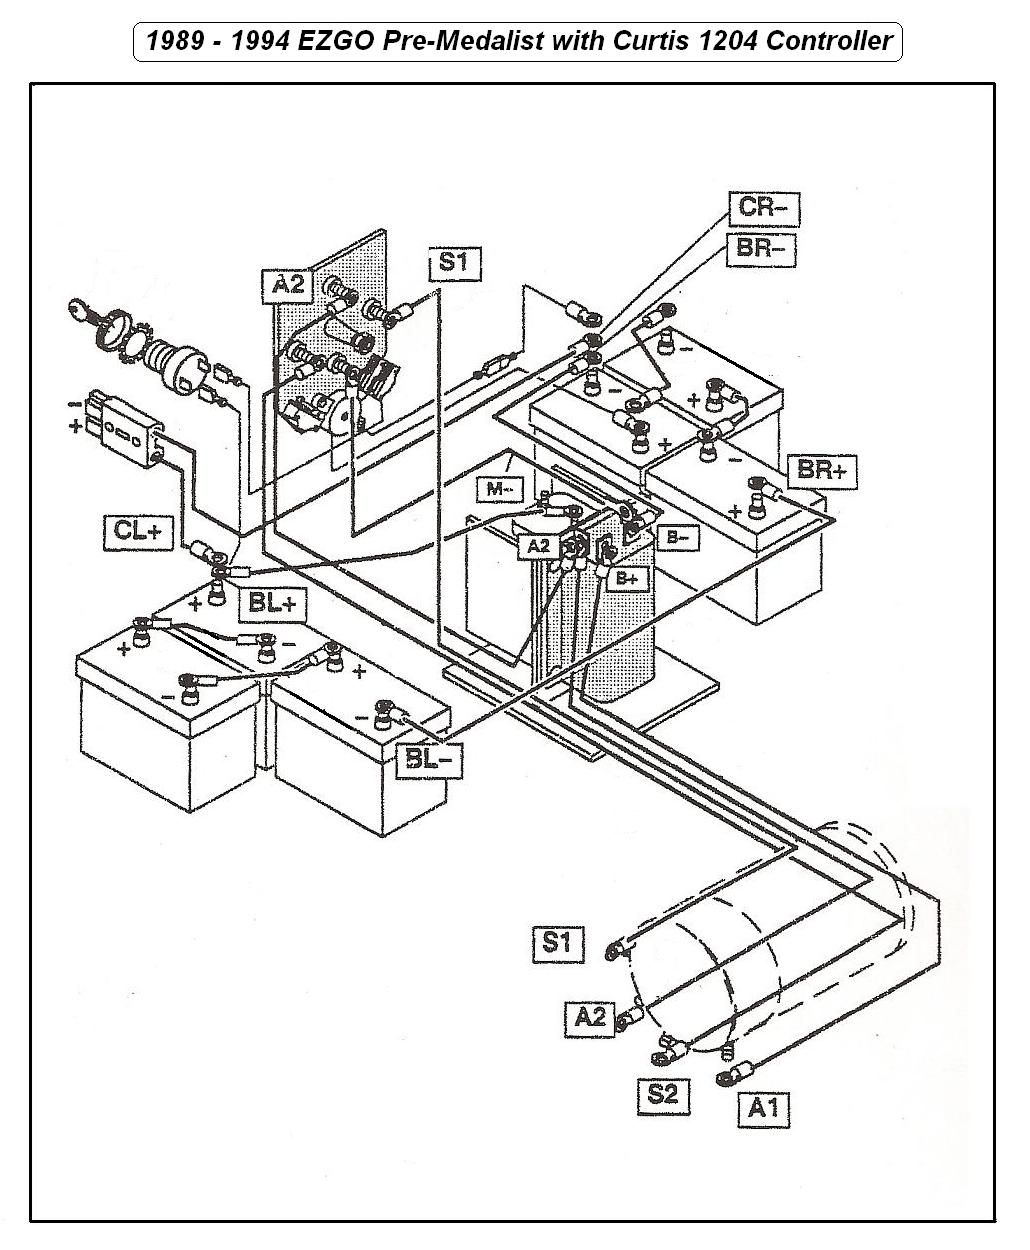 western star wiring diagram with Gallery on 921698 Plow Light Wiring further International Fuse Box Diagram besides Chevy 2500 7 Way Connector Wiring Diagram as well Ford Fusion 2006 Ford Fusion 8 moreover Northman Solenoid Wiring Schematic.